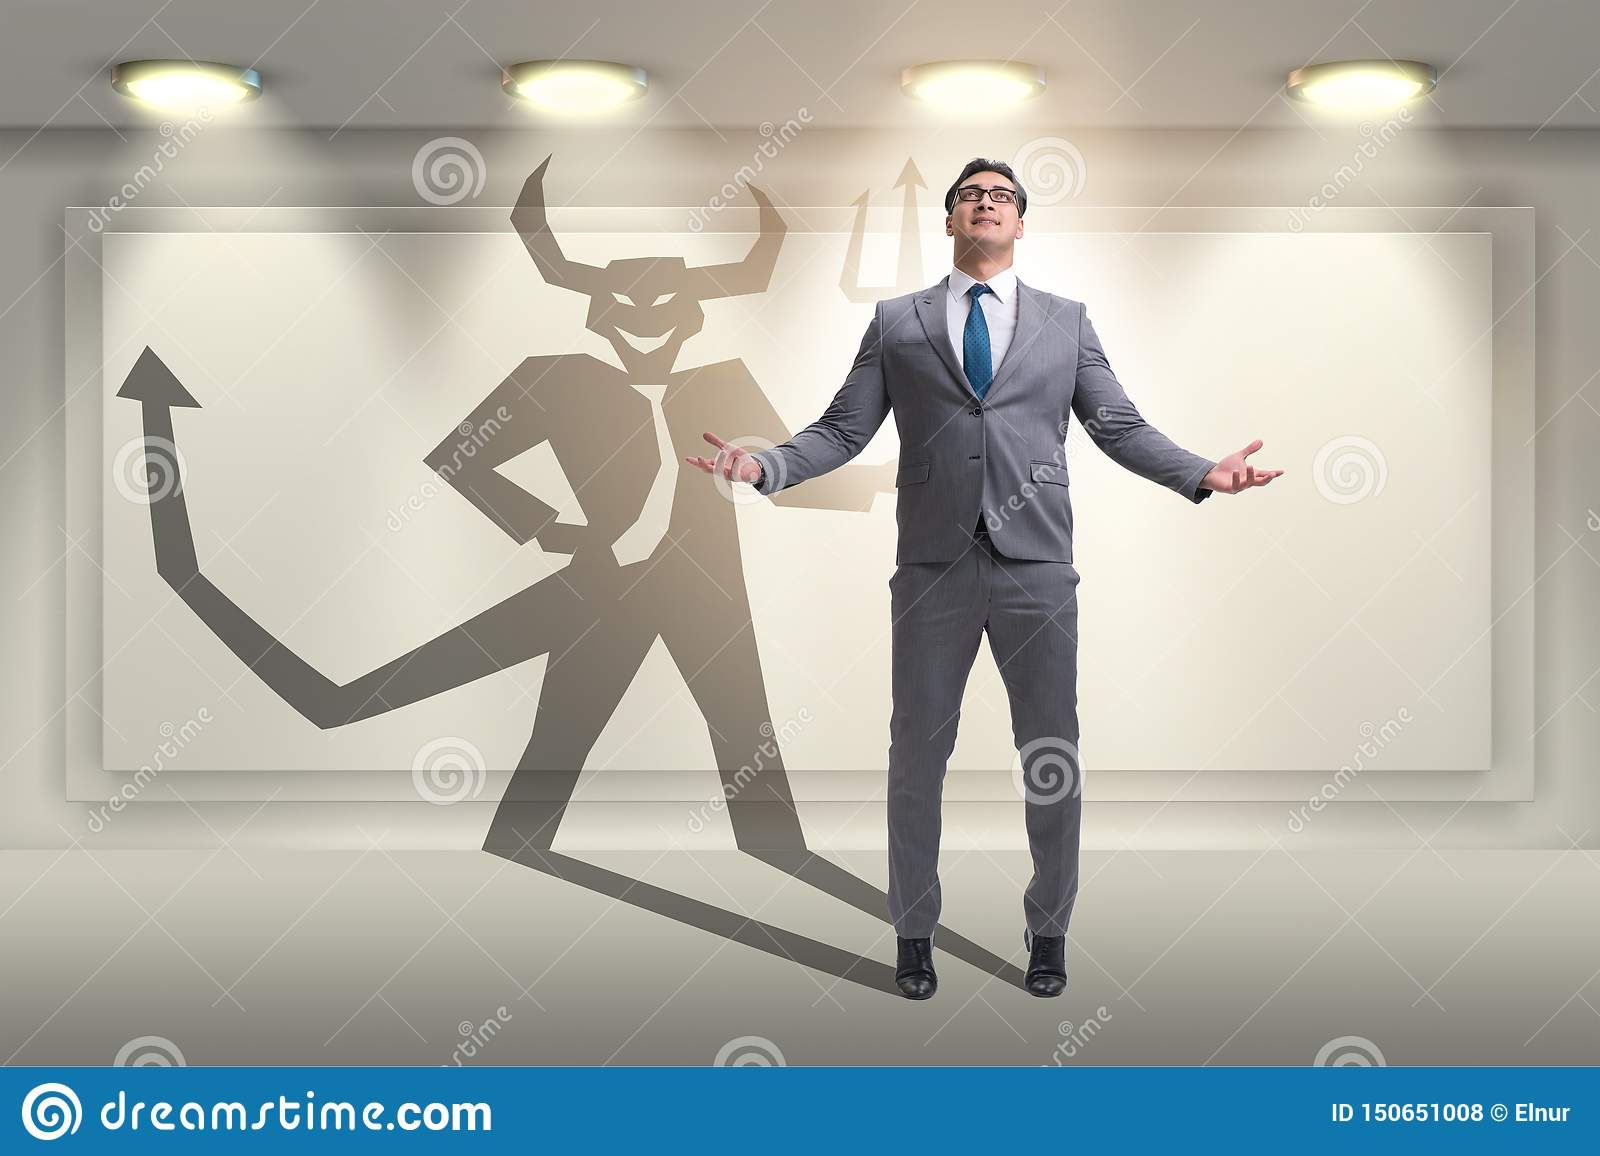 The devil hiding in the businessman - alter ego concept